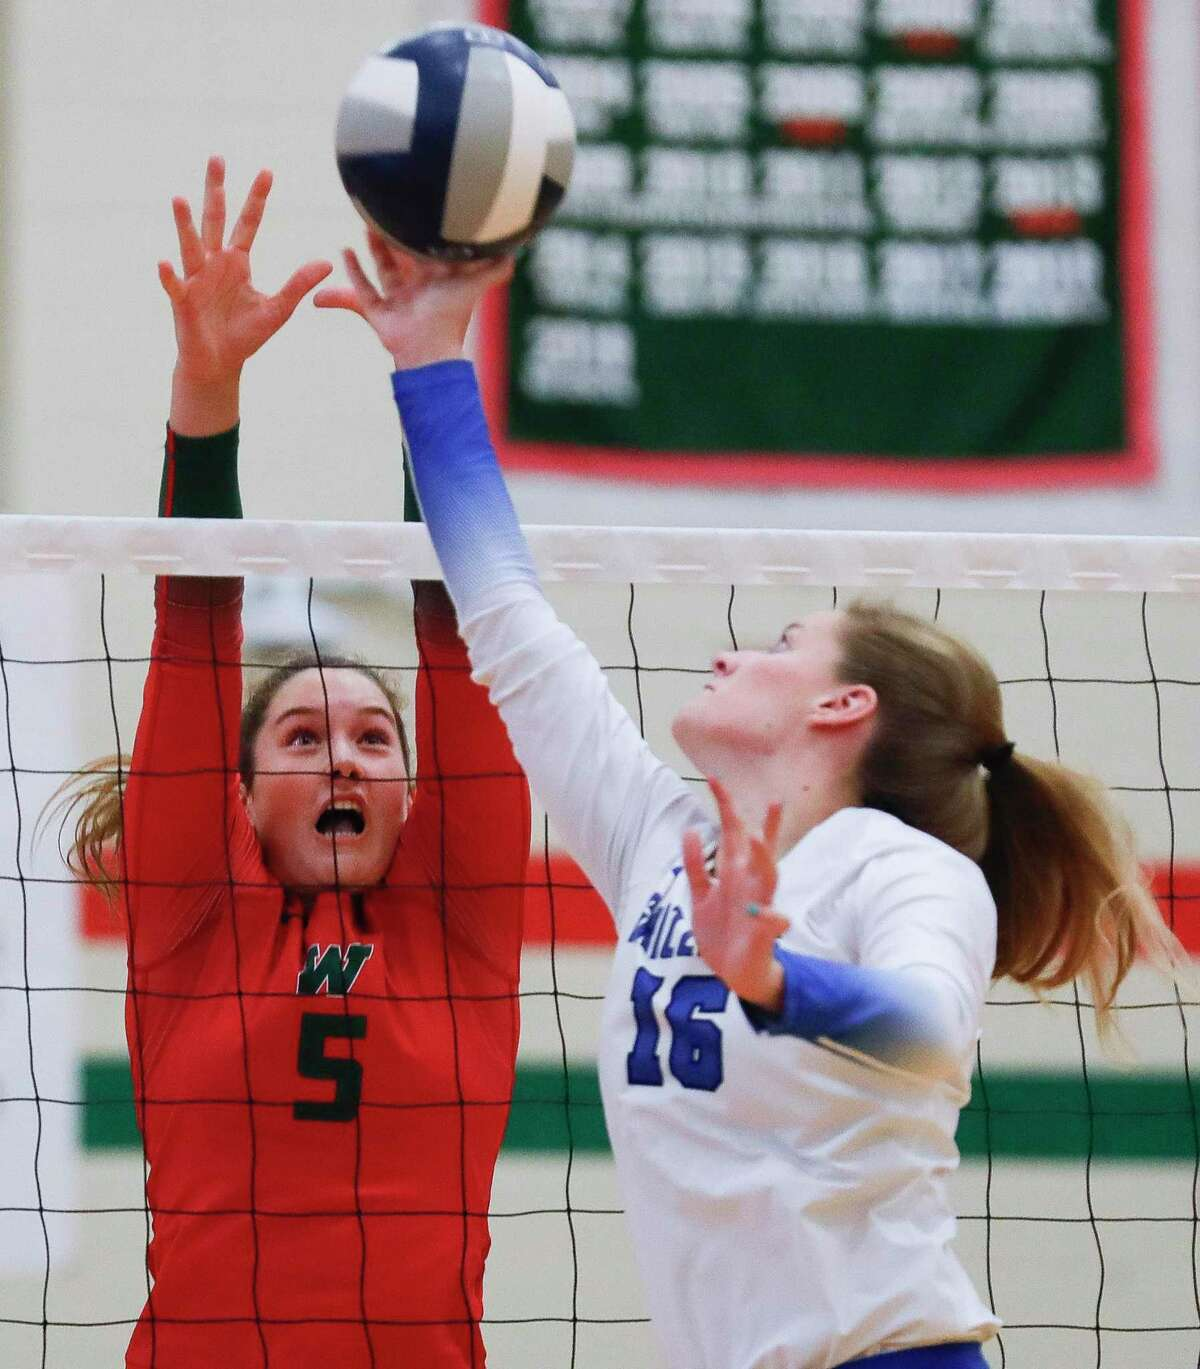 The Woodlands' Ella Lewis (5) pressures a tip from Grand Oaks' Aidan Ballard (15) during the first set of a high school volleyball match at The Woodlands High School, Tuesday, Sept. 28, 2021, in The Woodlands.